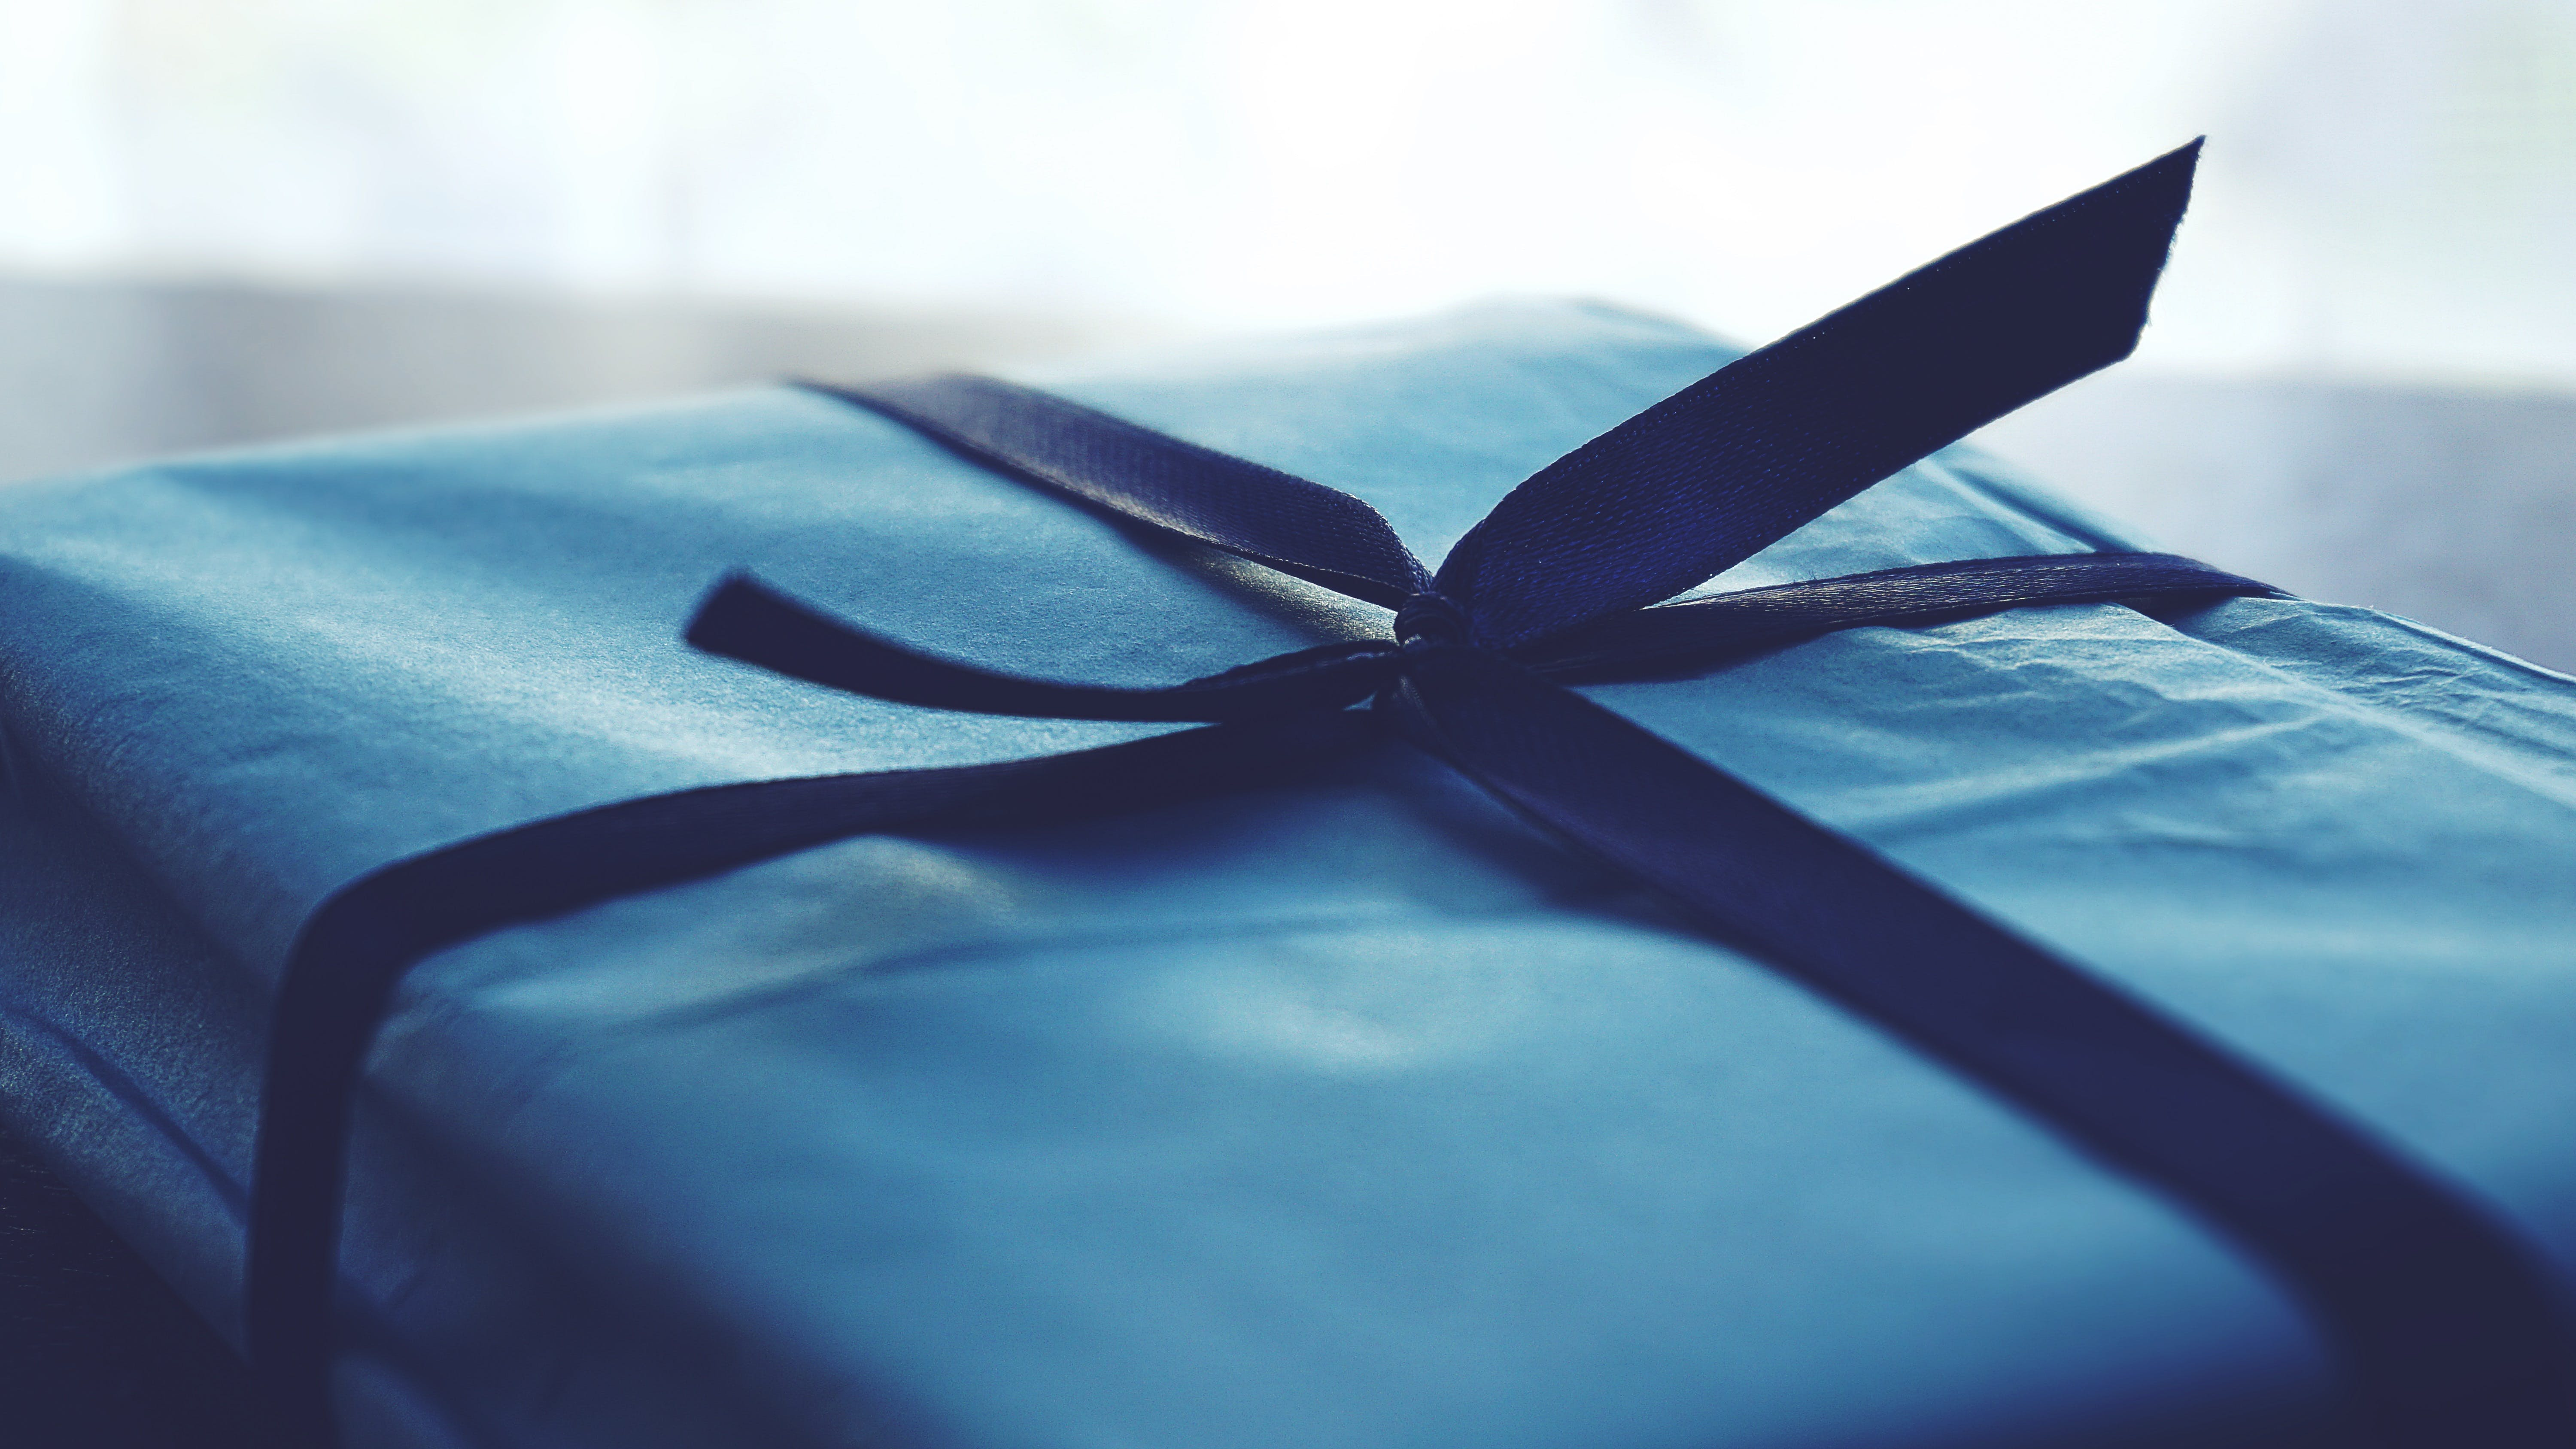 Close-up Photo of Tied Blue Box